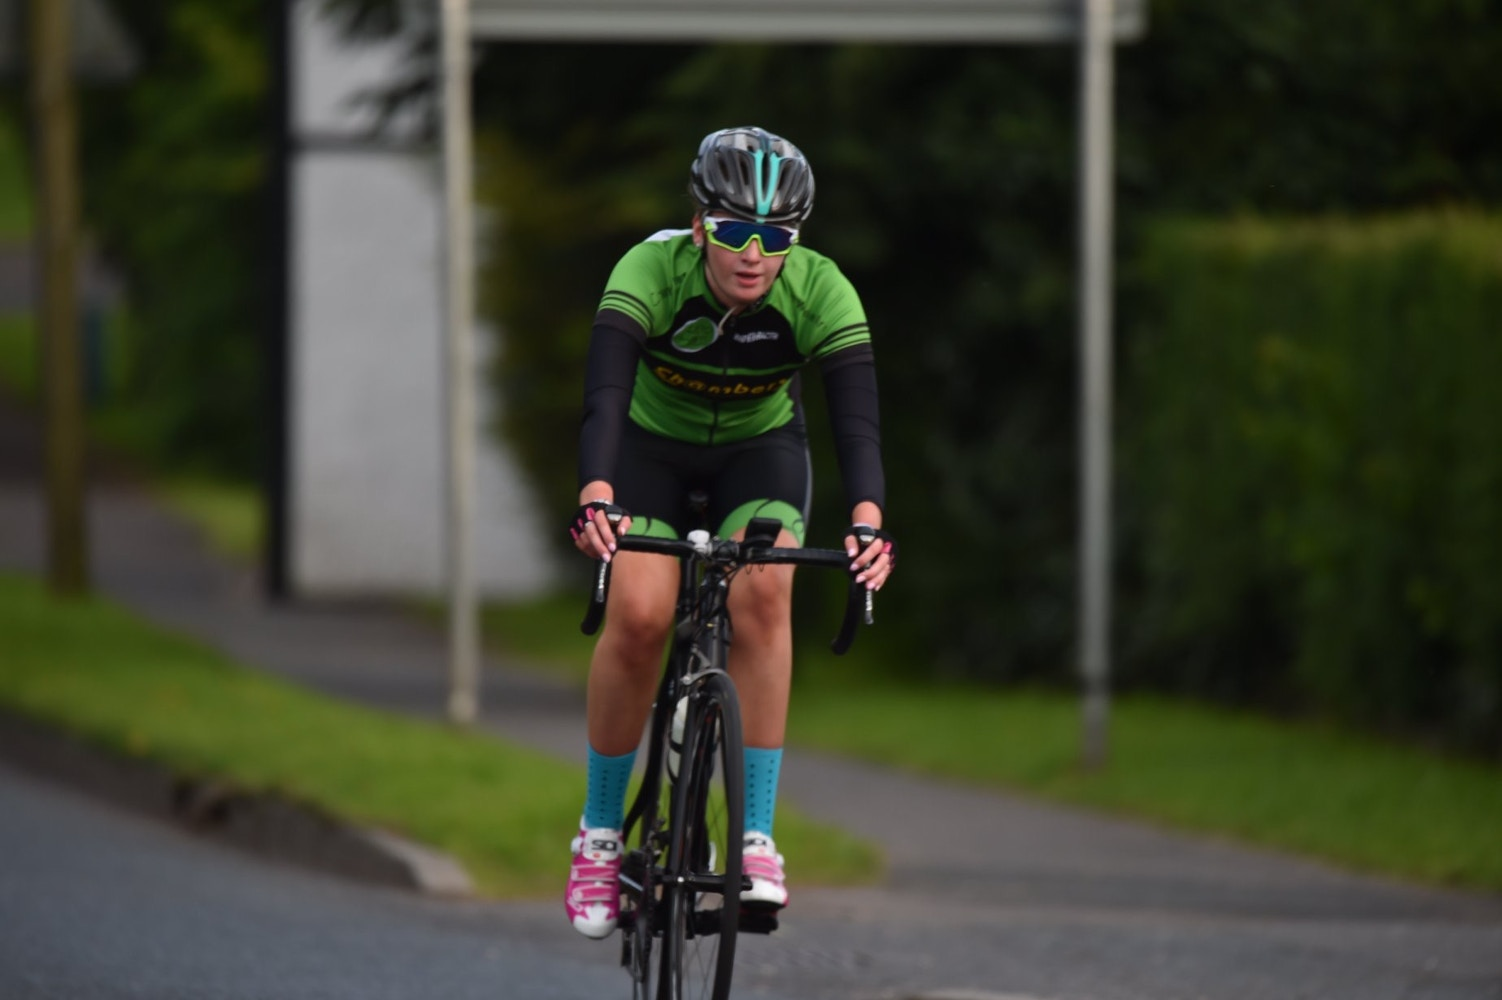 Co. Derry Teen Set to Race in Belgium